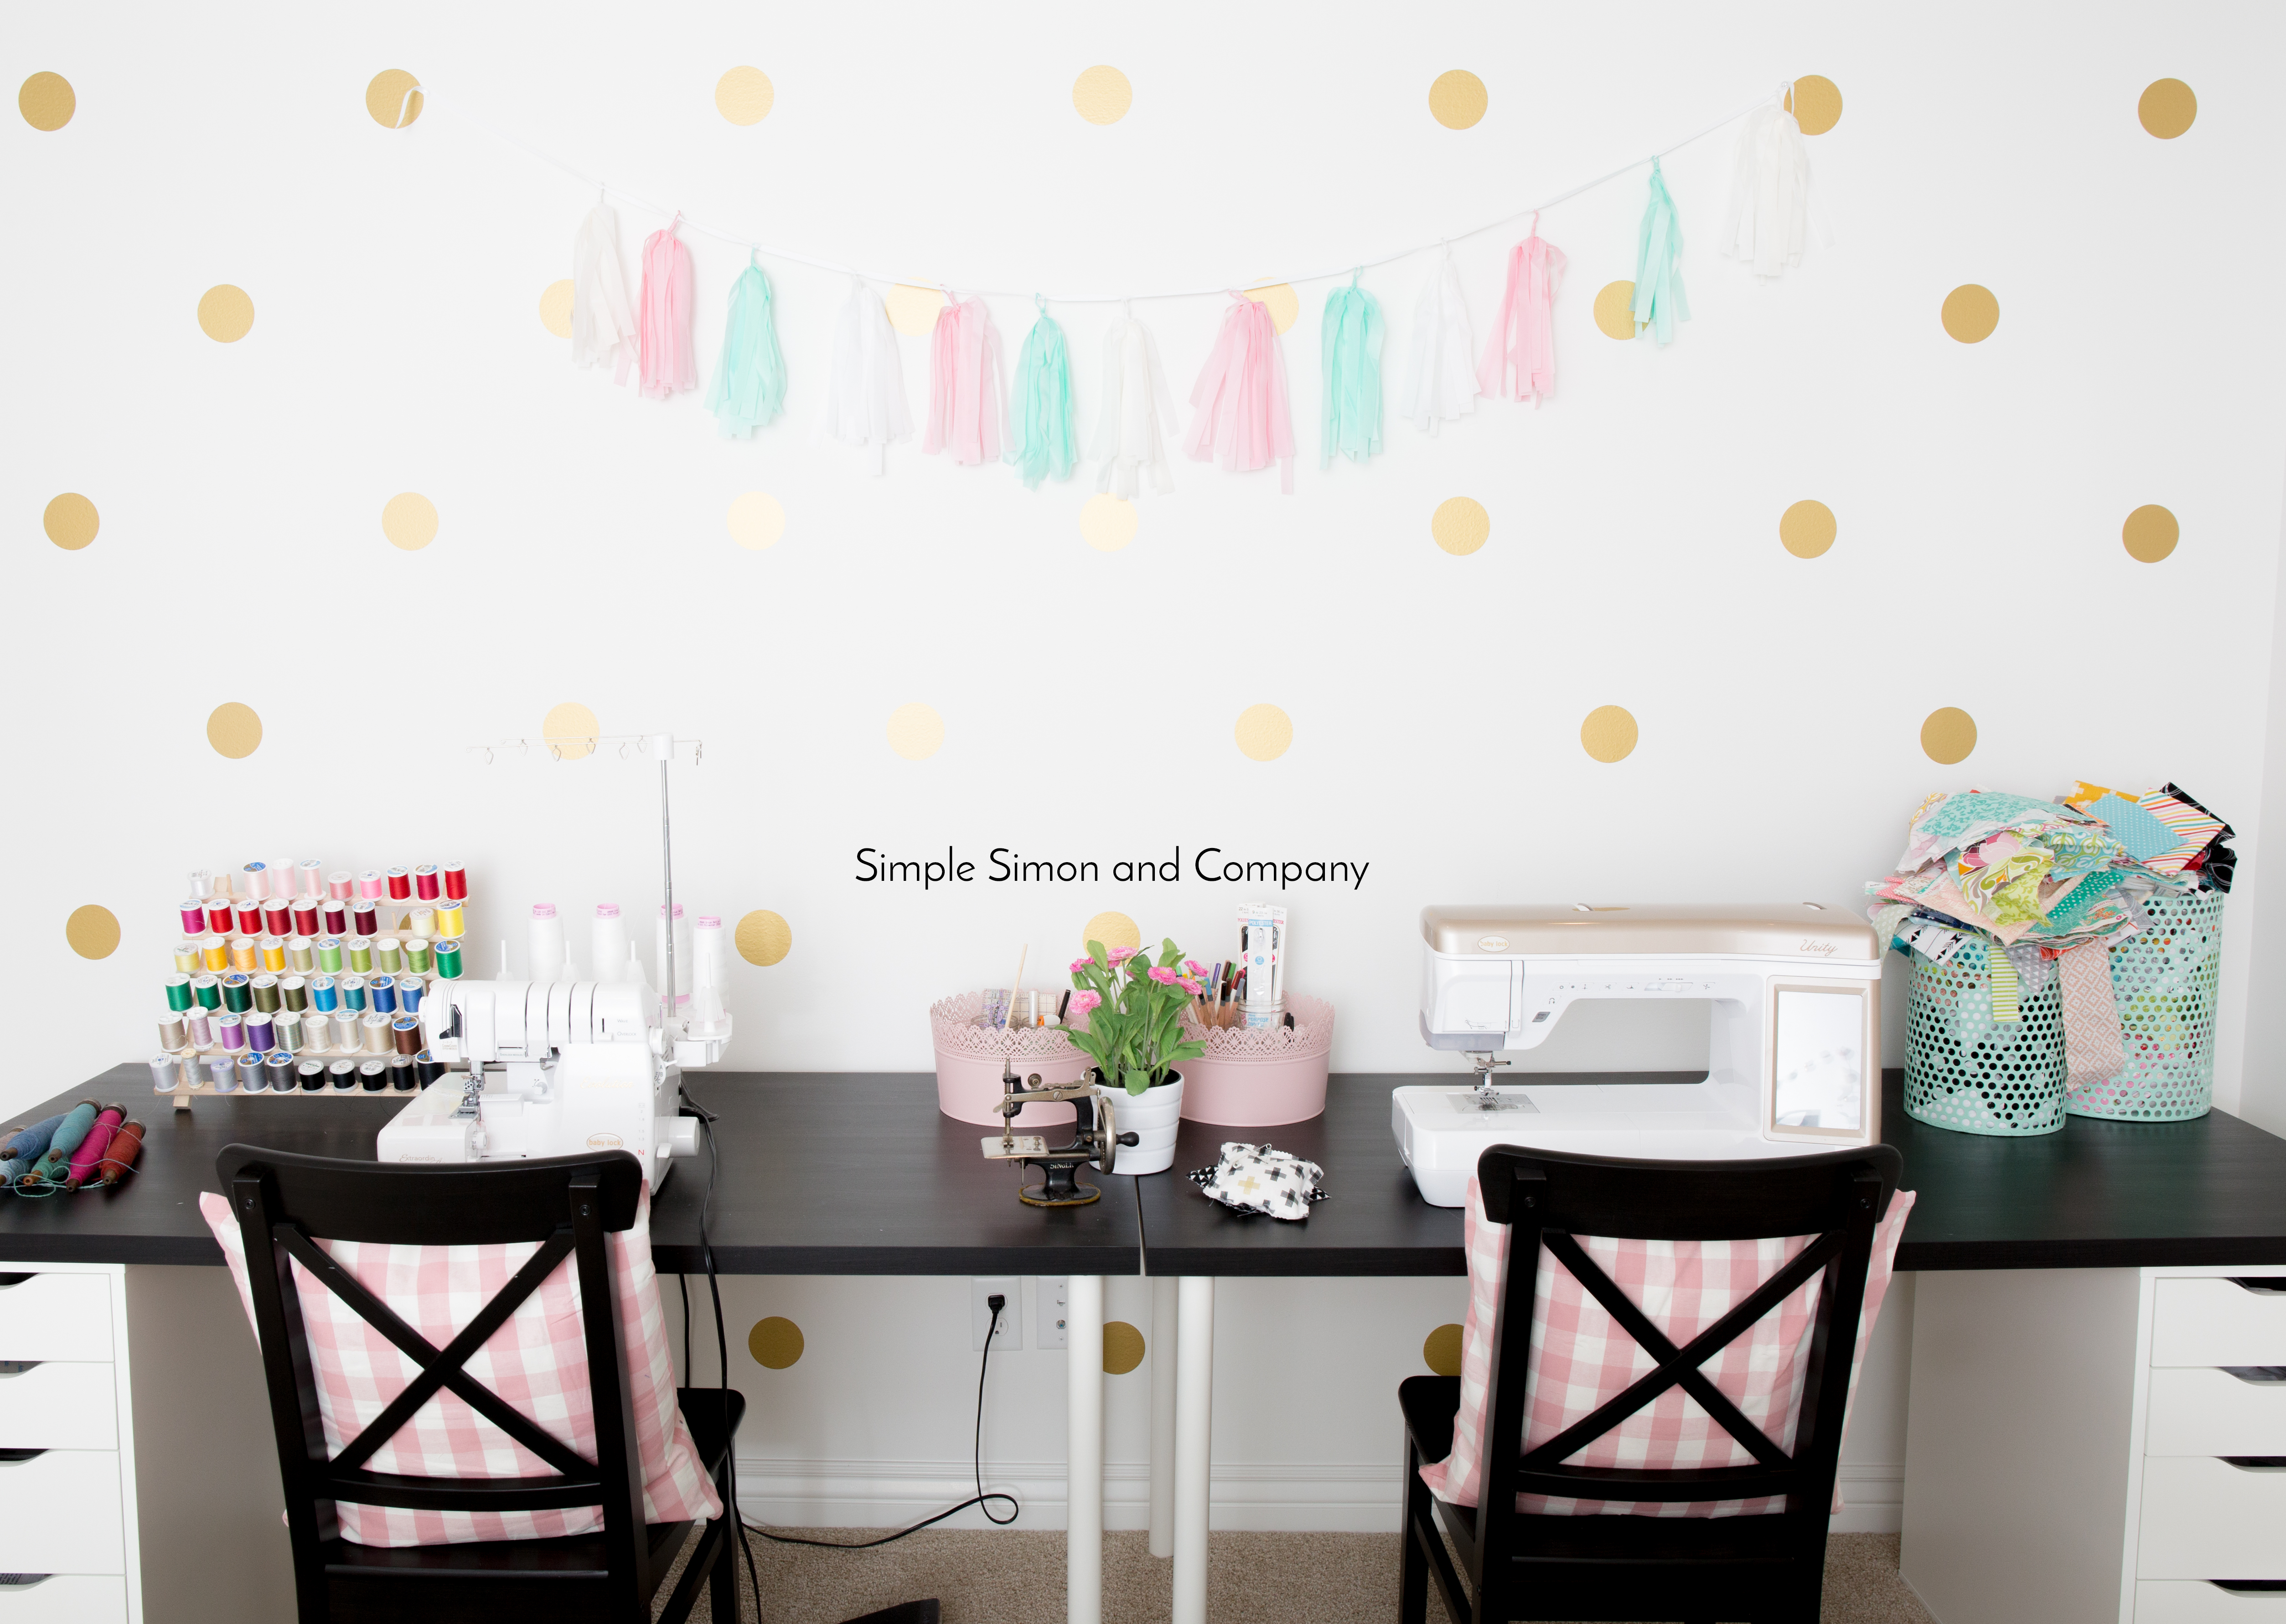 Elizabeth's Sewing Room - Simple Simon and Company